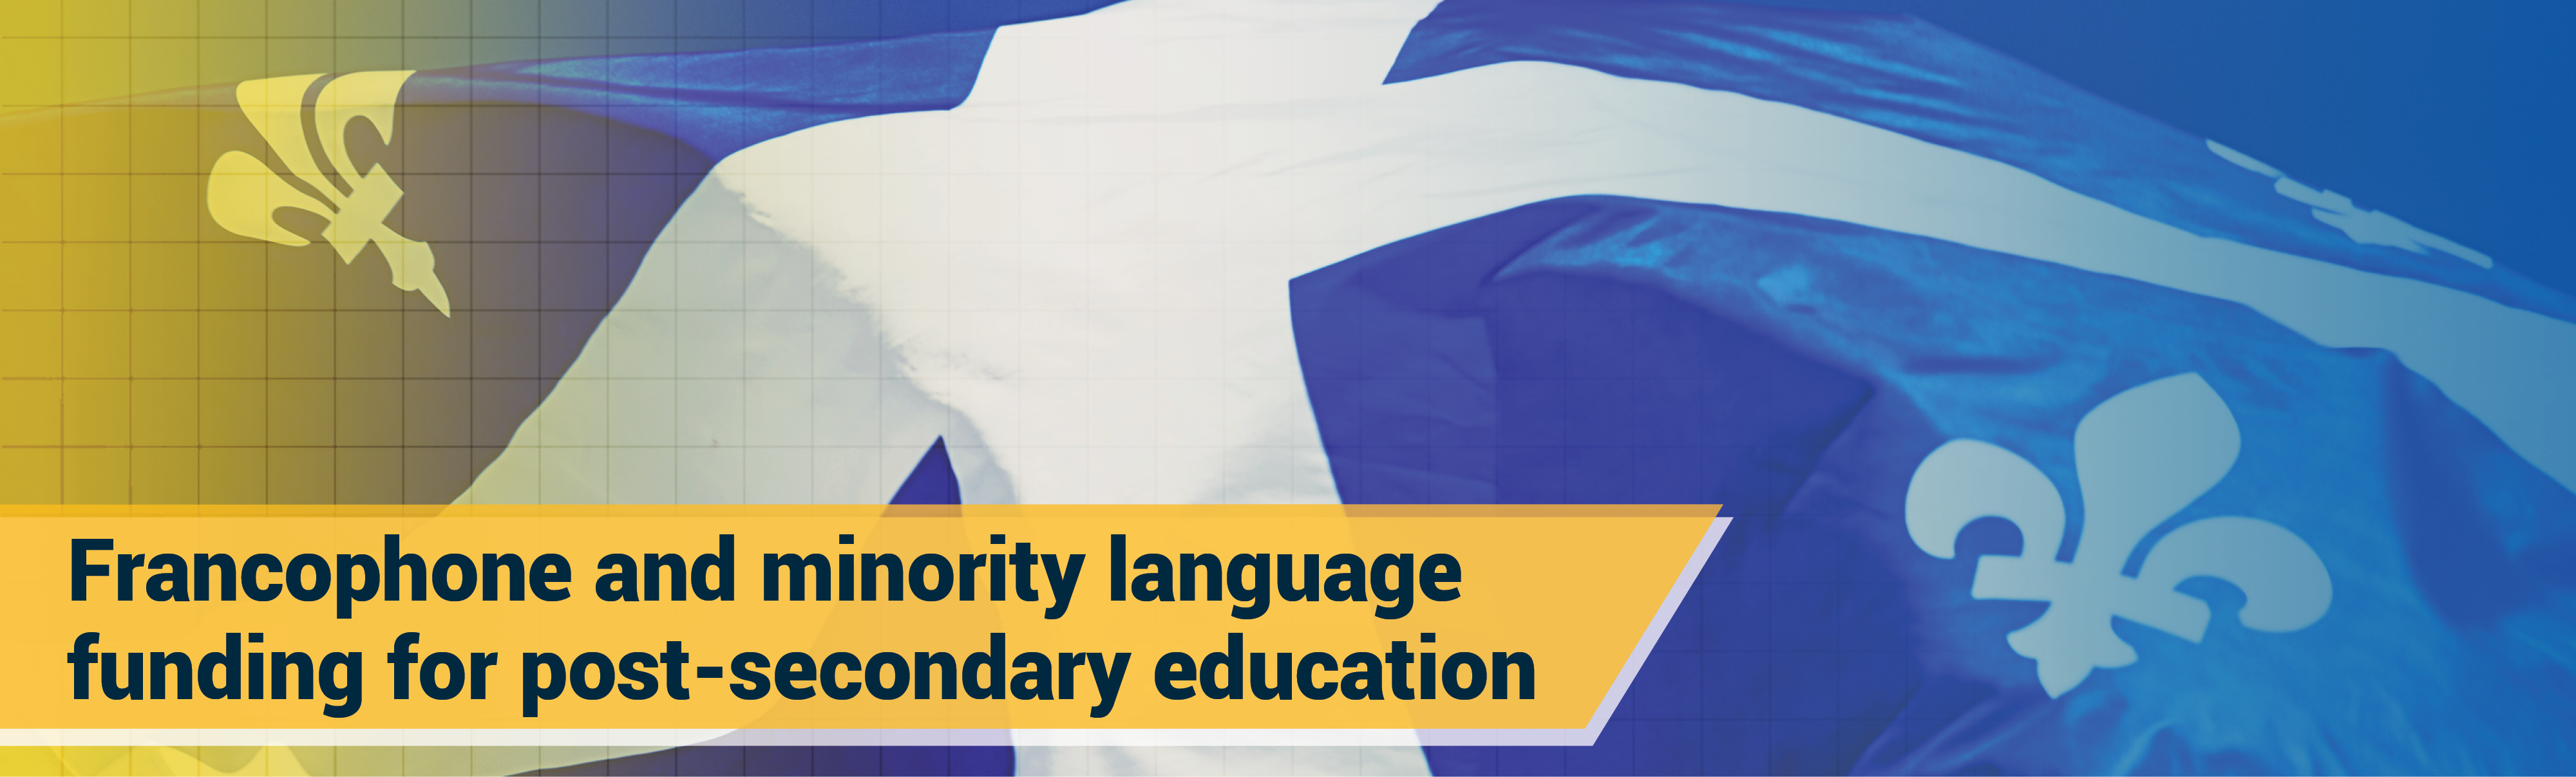 Francophone and minority language funding for post-secondary education